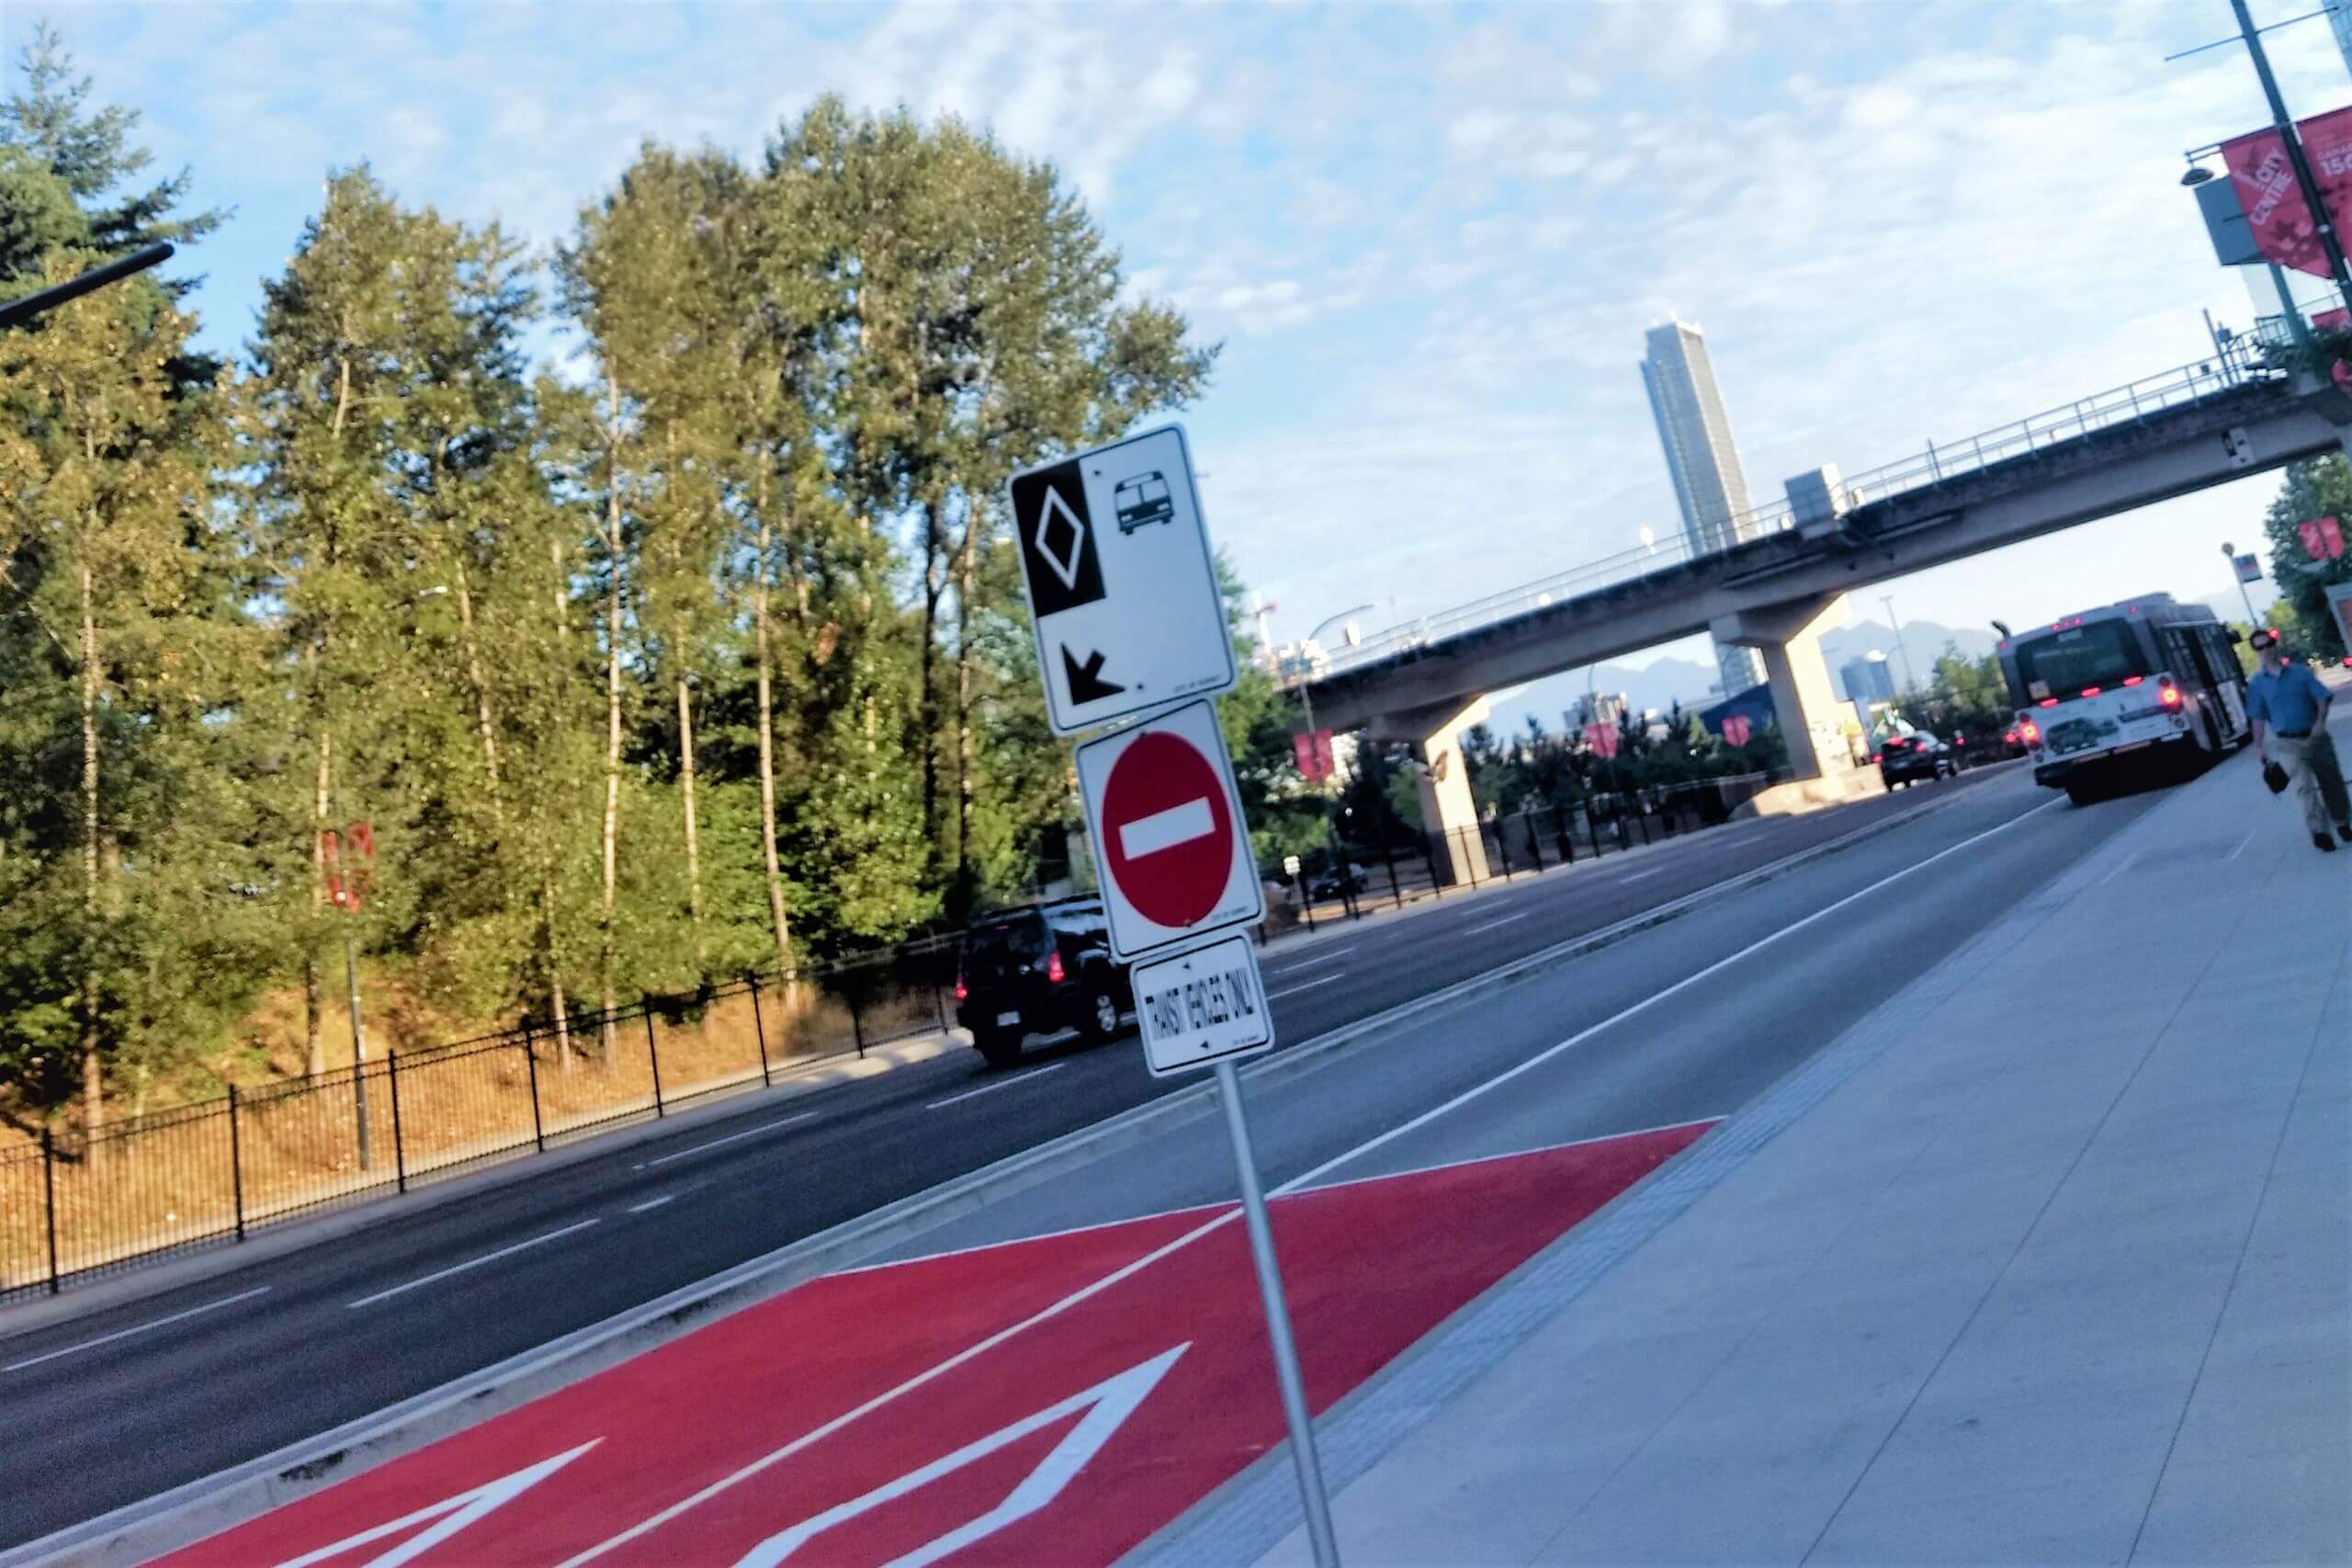 Fraser Highway bus lanes proposed as precursor to future SkyTrain